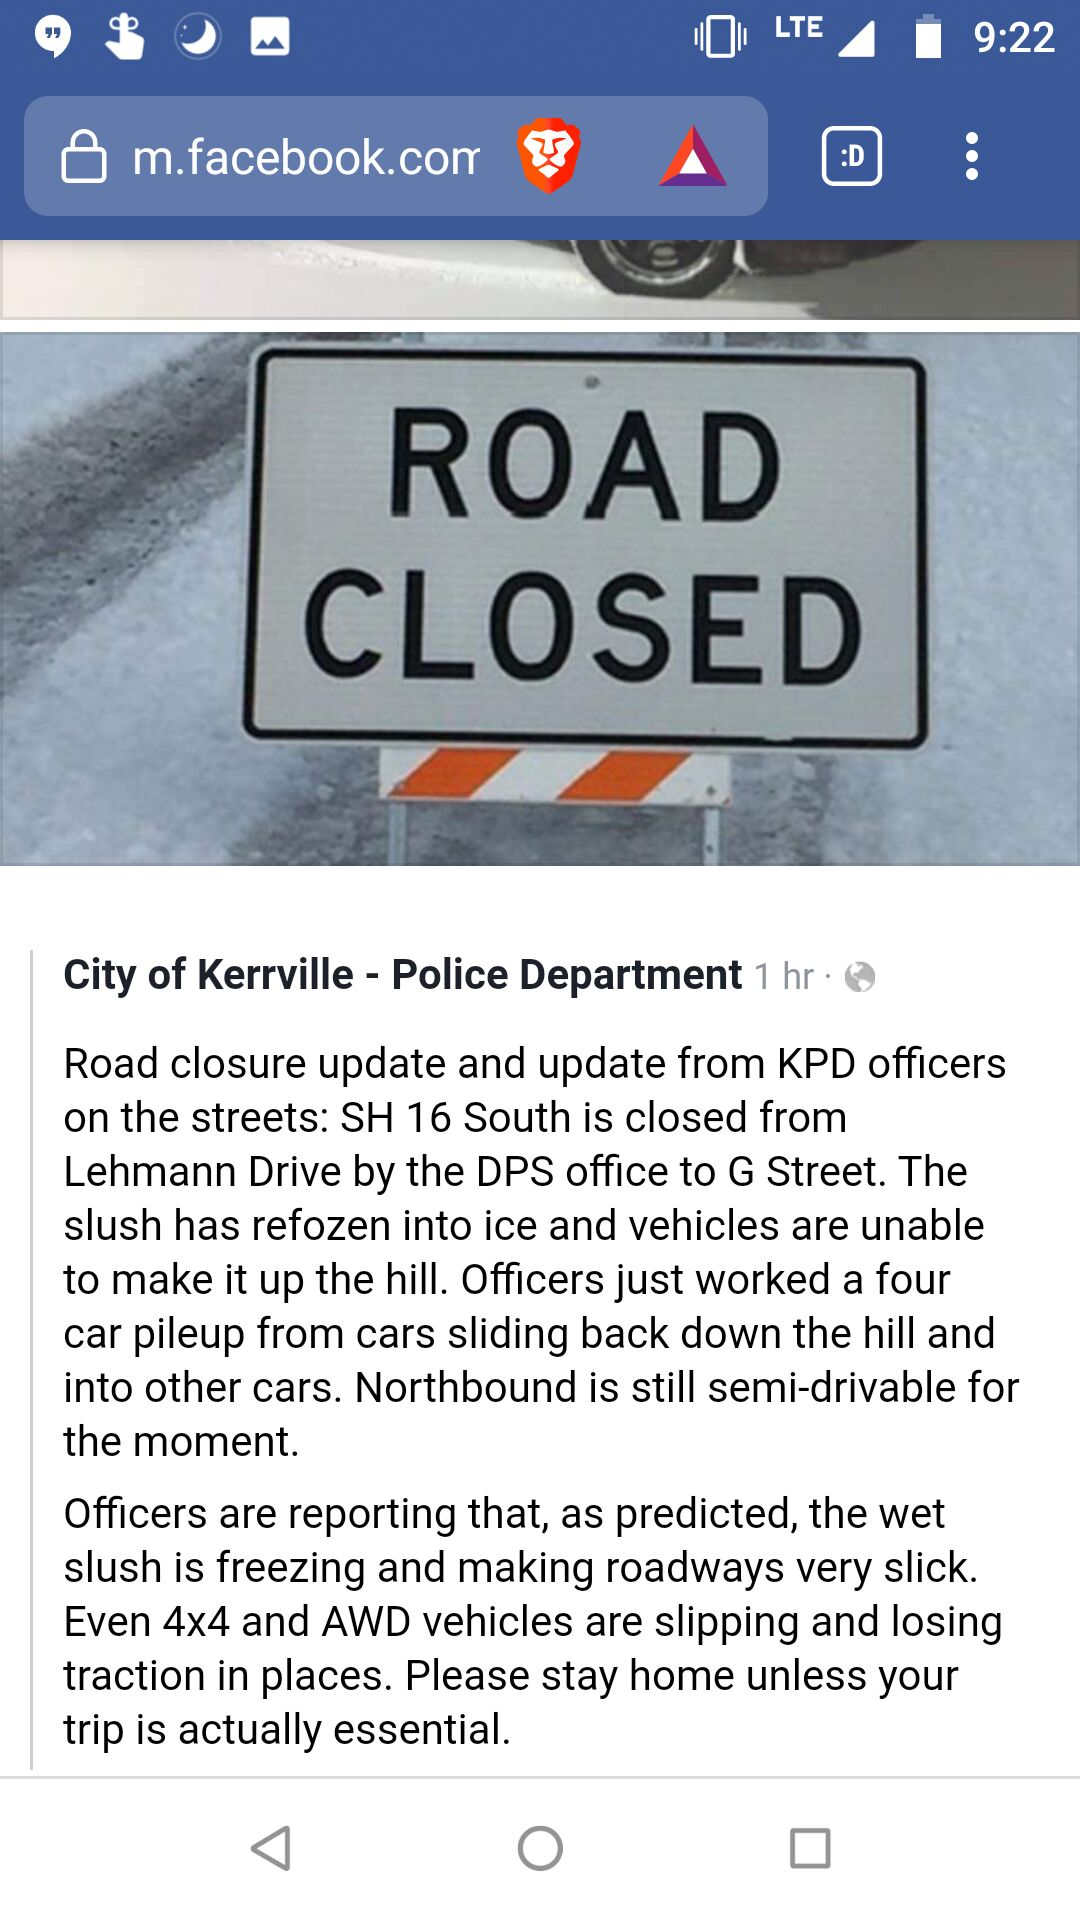 Latest update from KPD